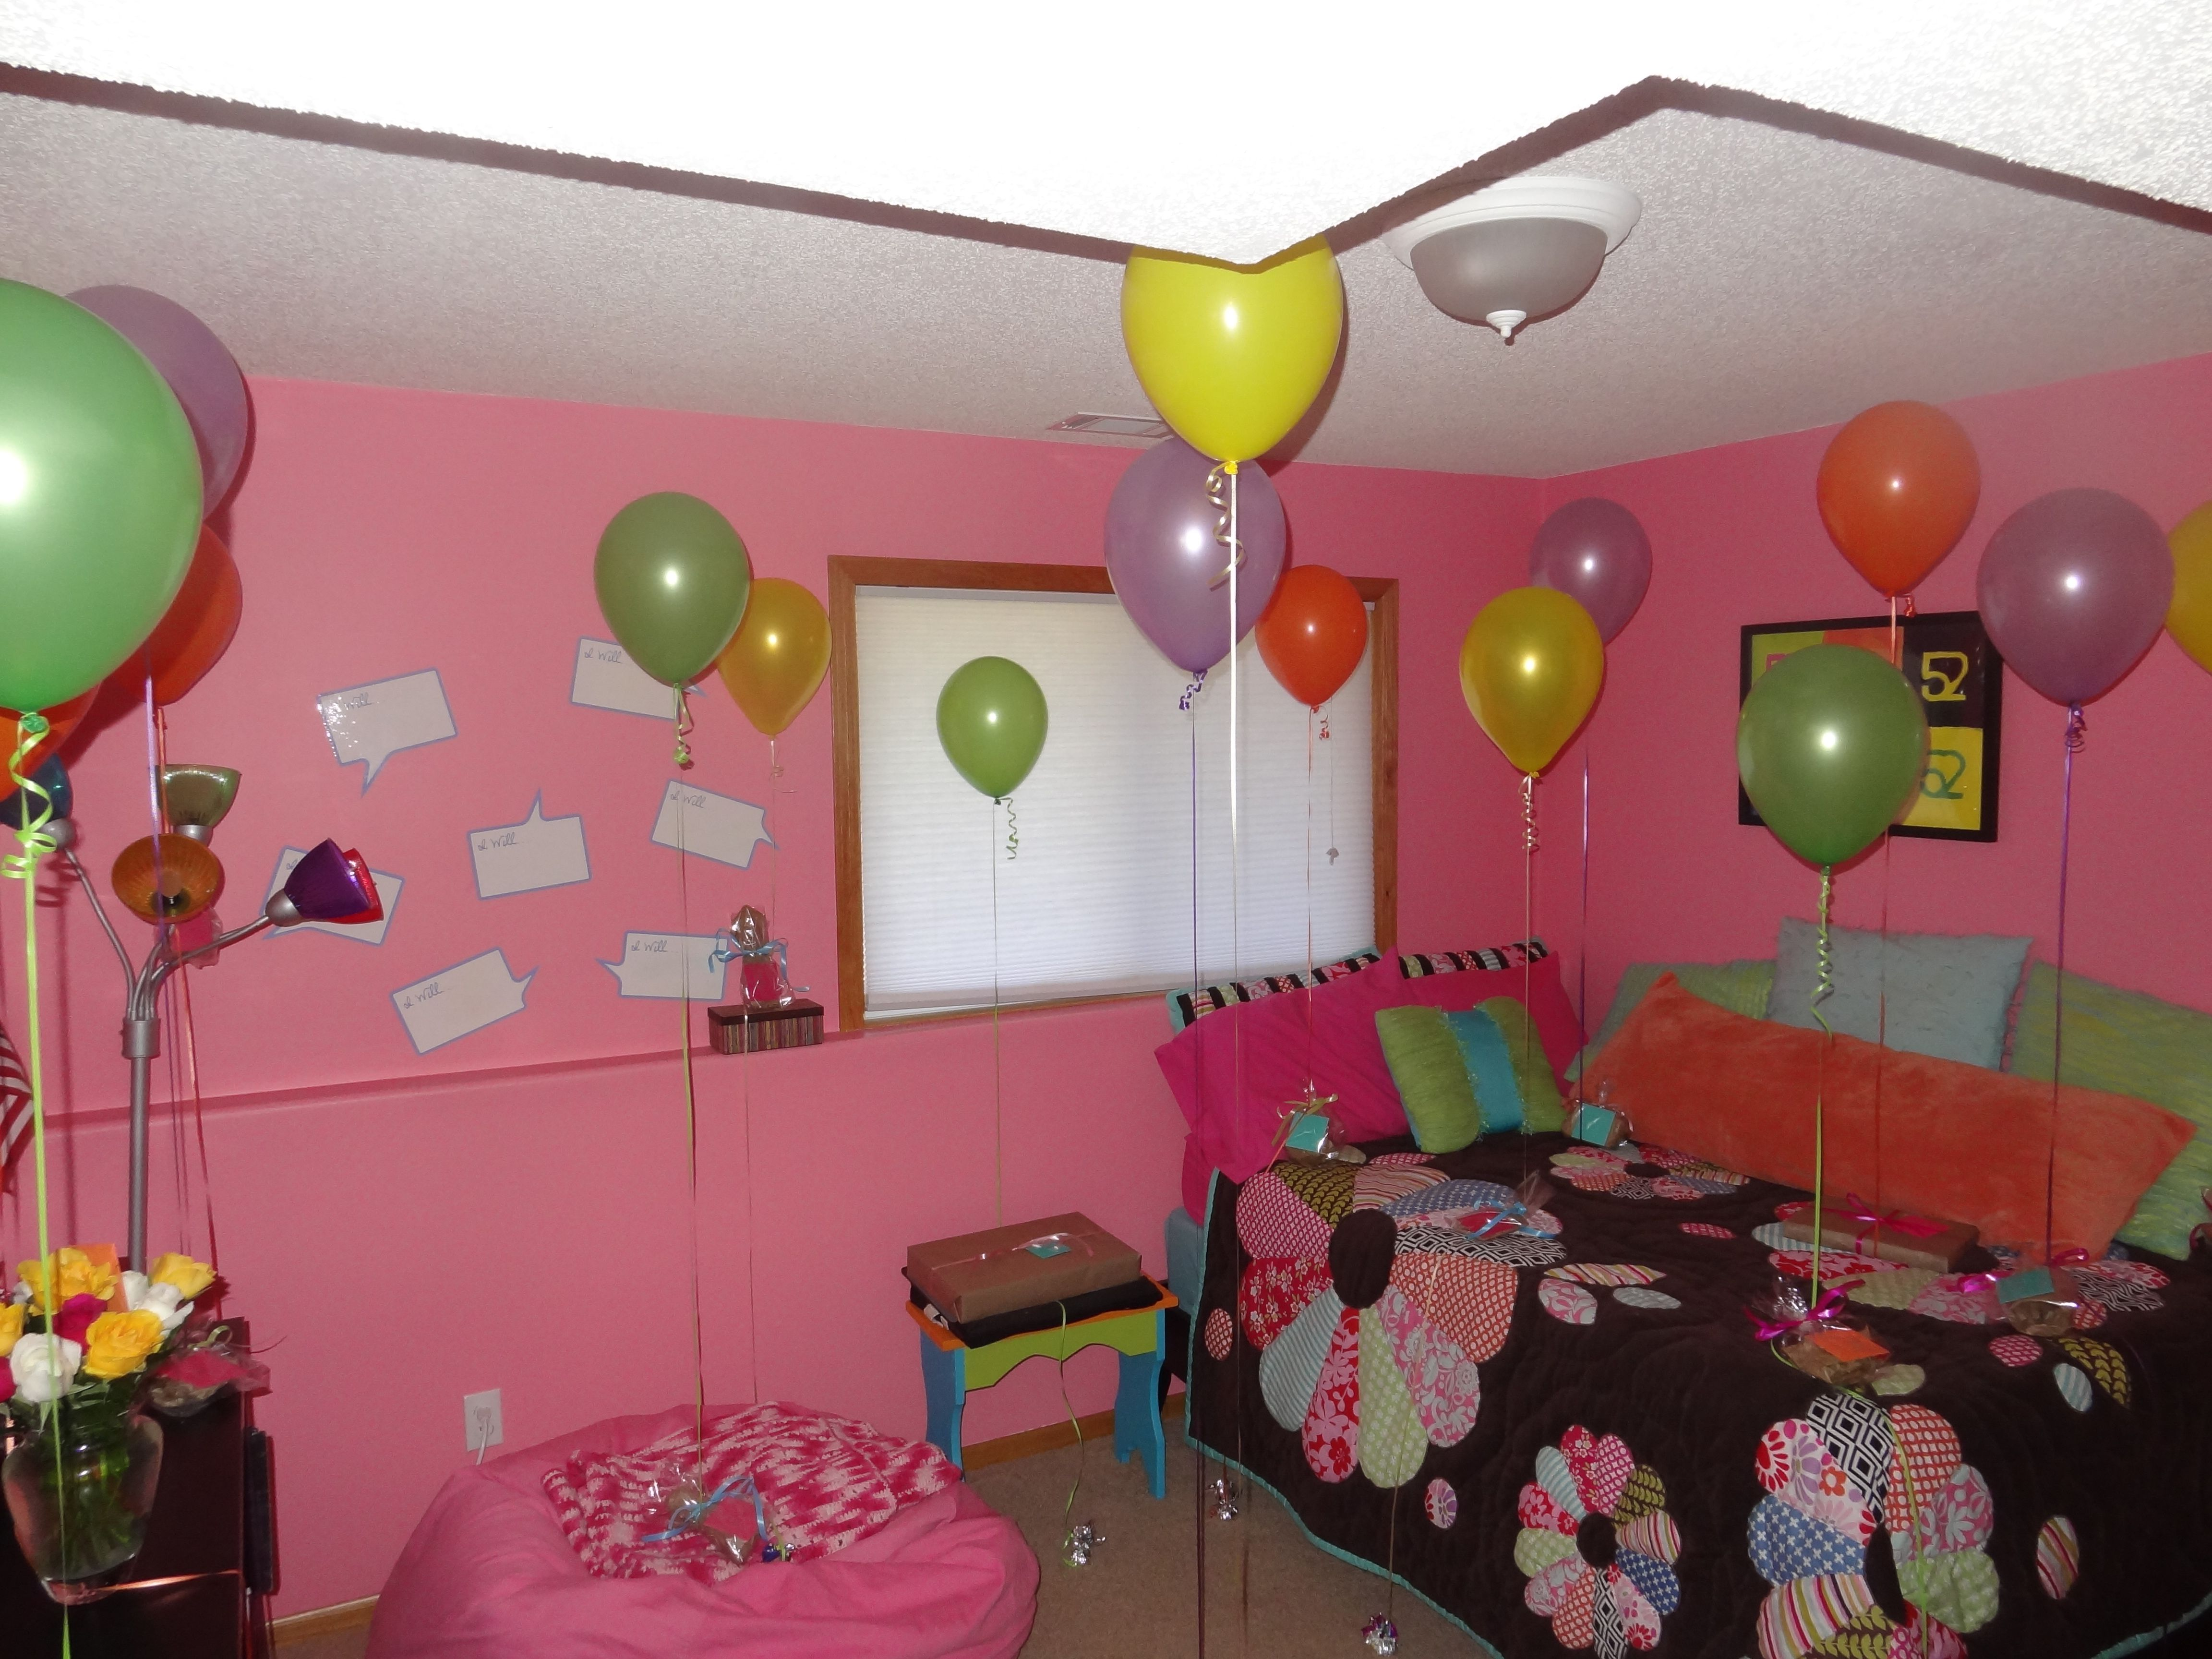 Surprise For 16th Birthday 16 Balloons Attached To Different Gifts Each Representing A Little Piece Of Advice Or Something I Want Her Remember